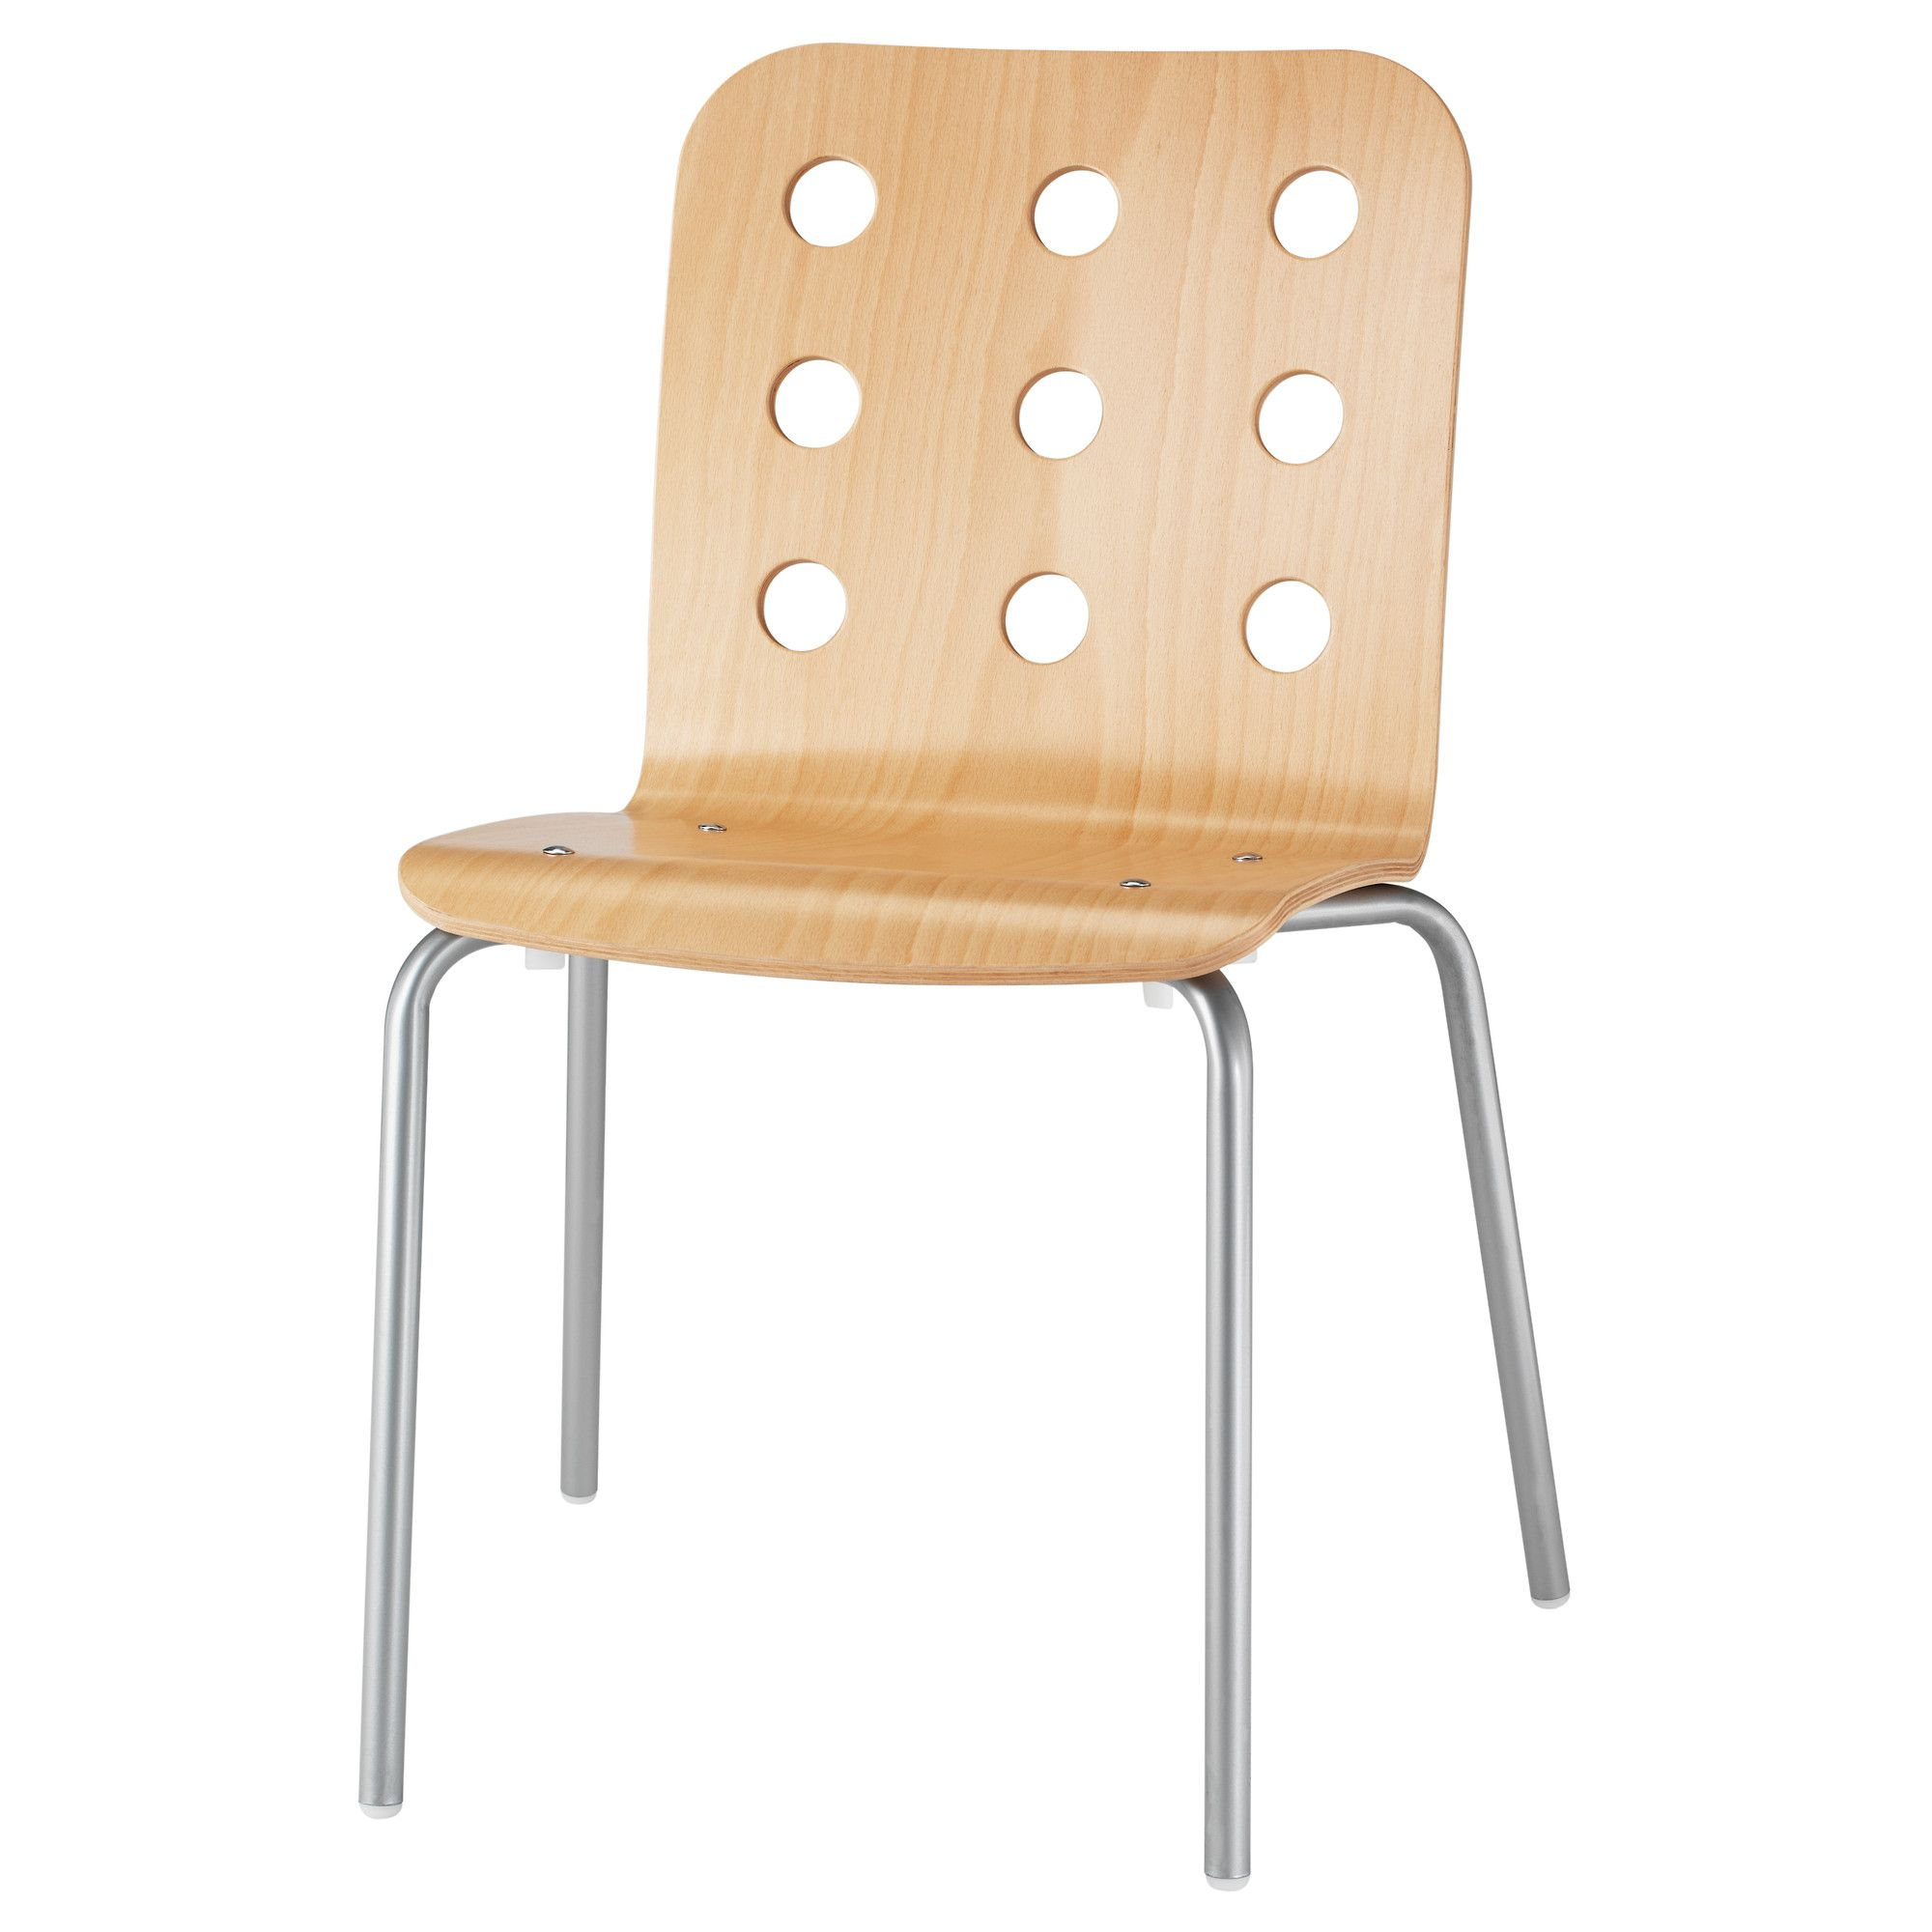 ikea jules chair rentals orlando matching visitor chairs for the office space 34 99